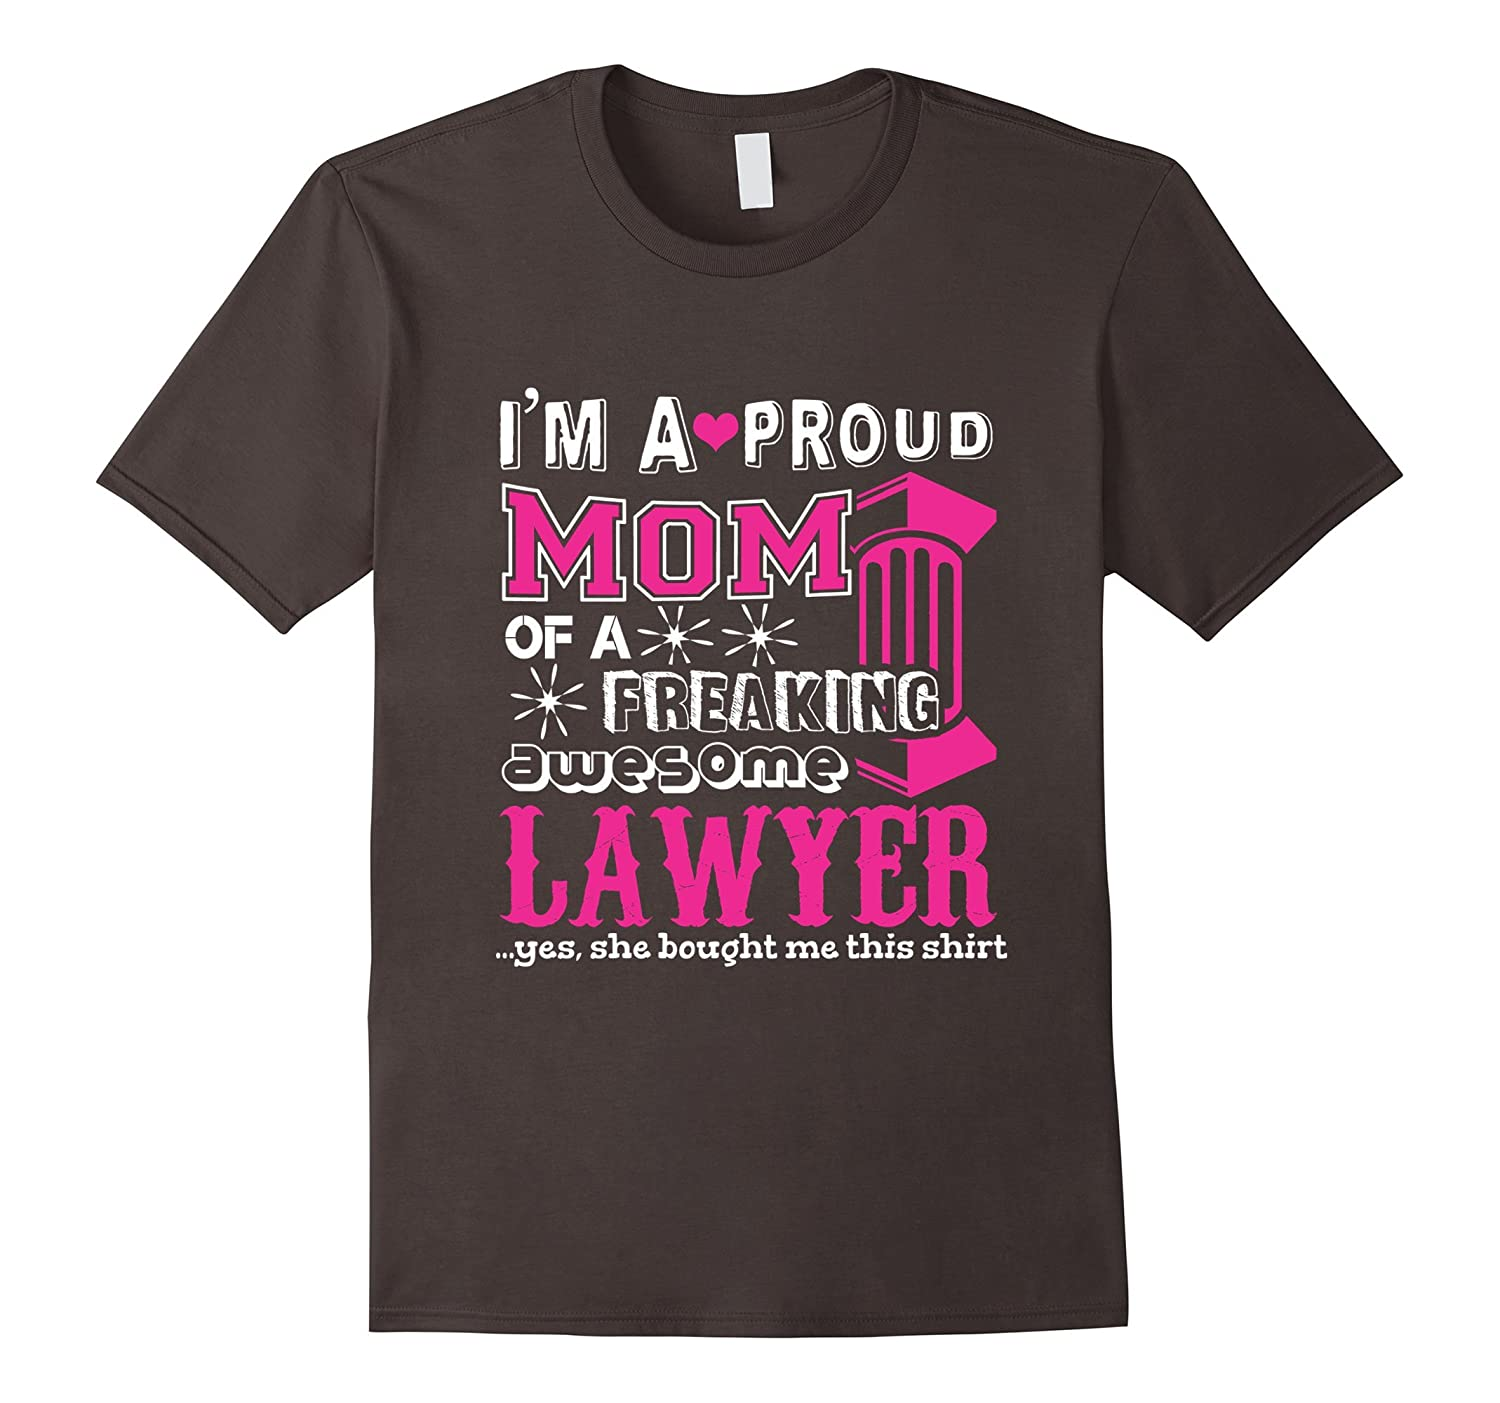 Funny Shirt For Lawyer Mom Gift For Mother From Daughter-TH